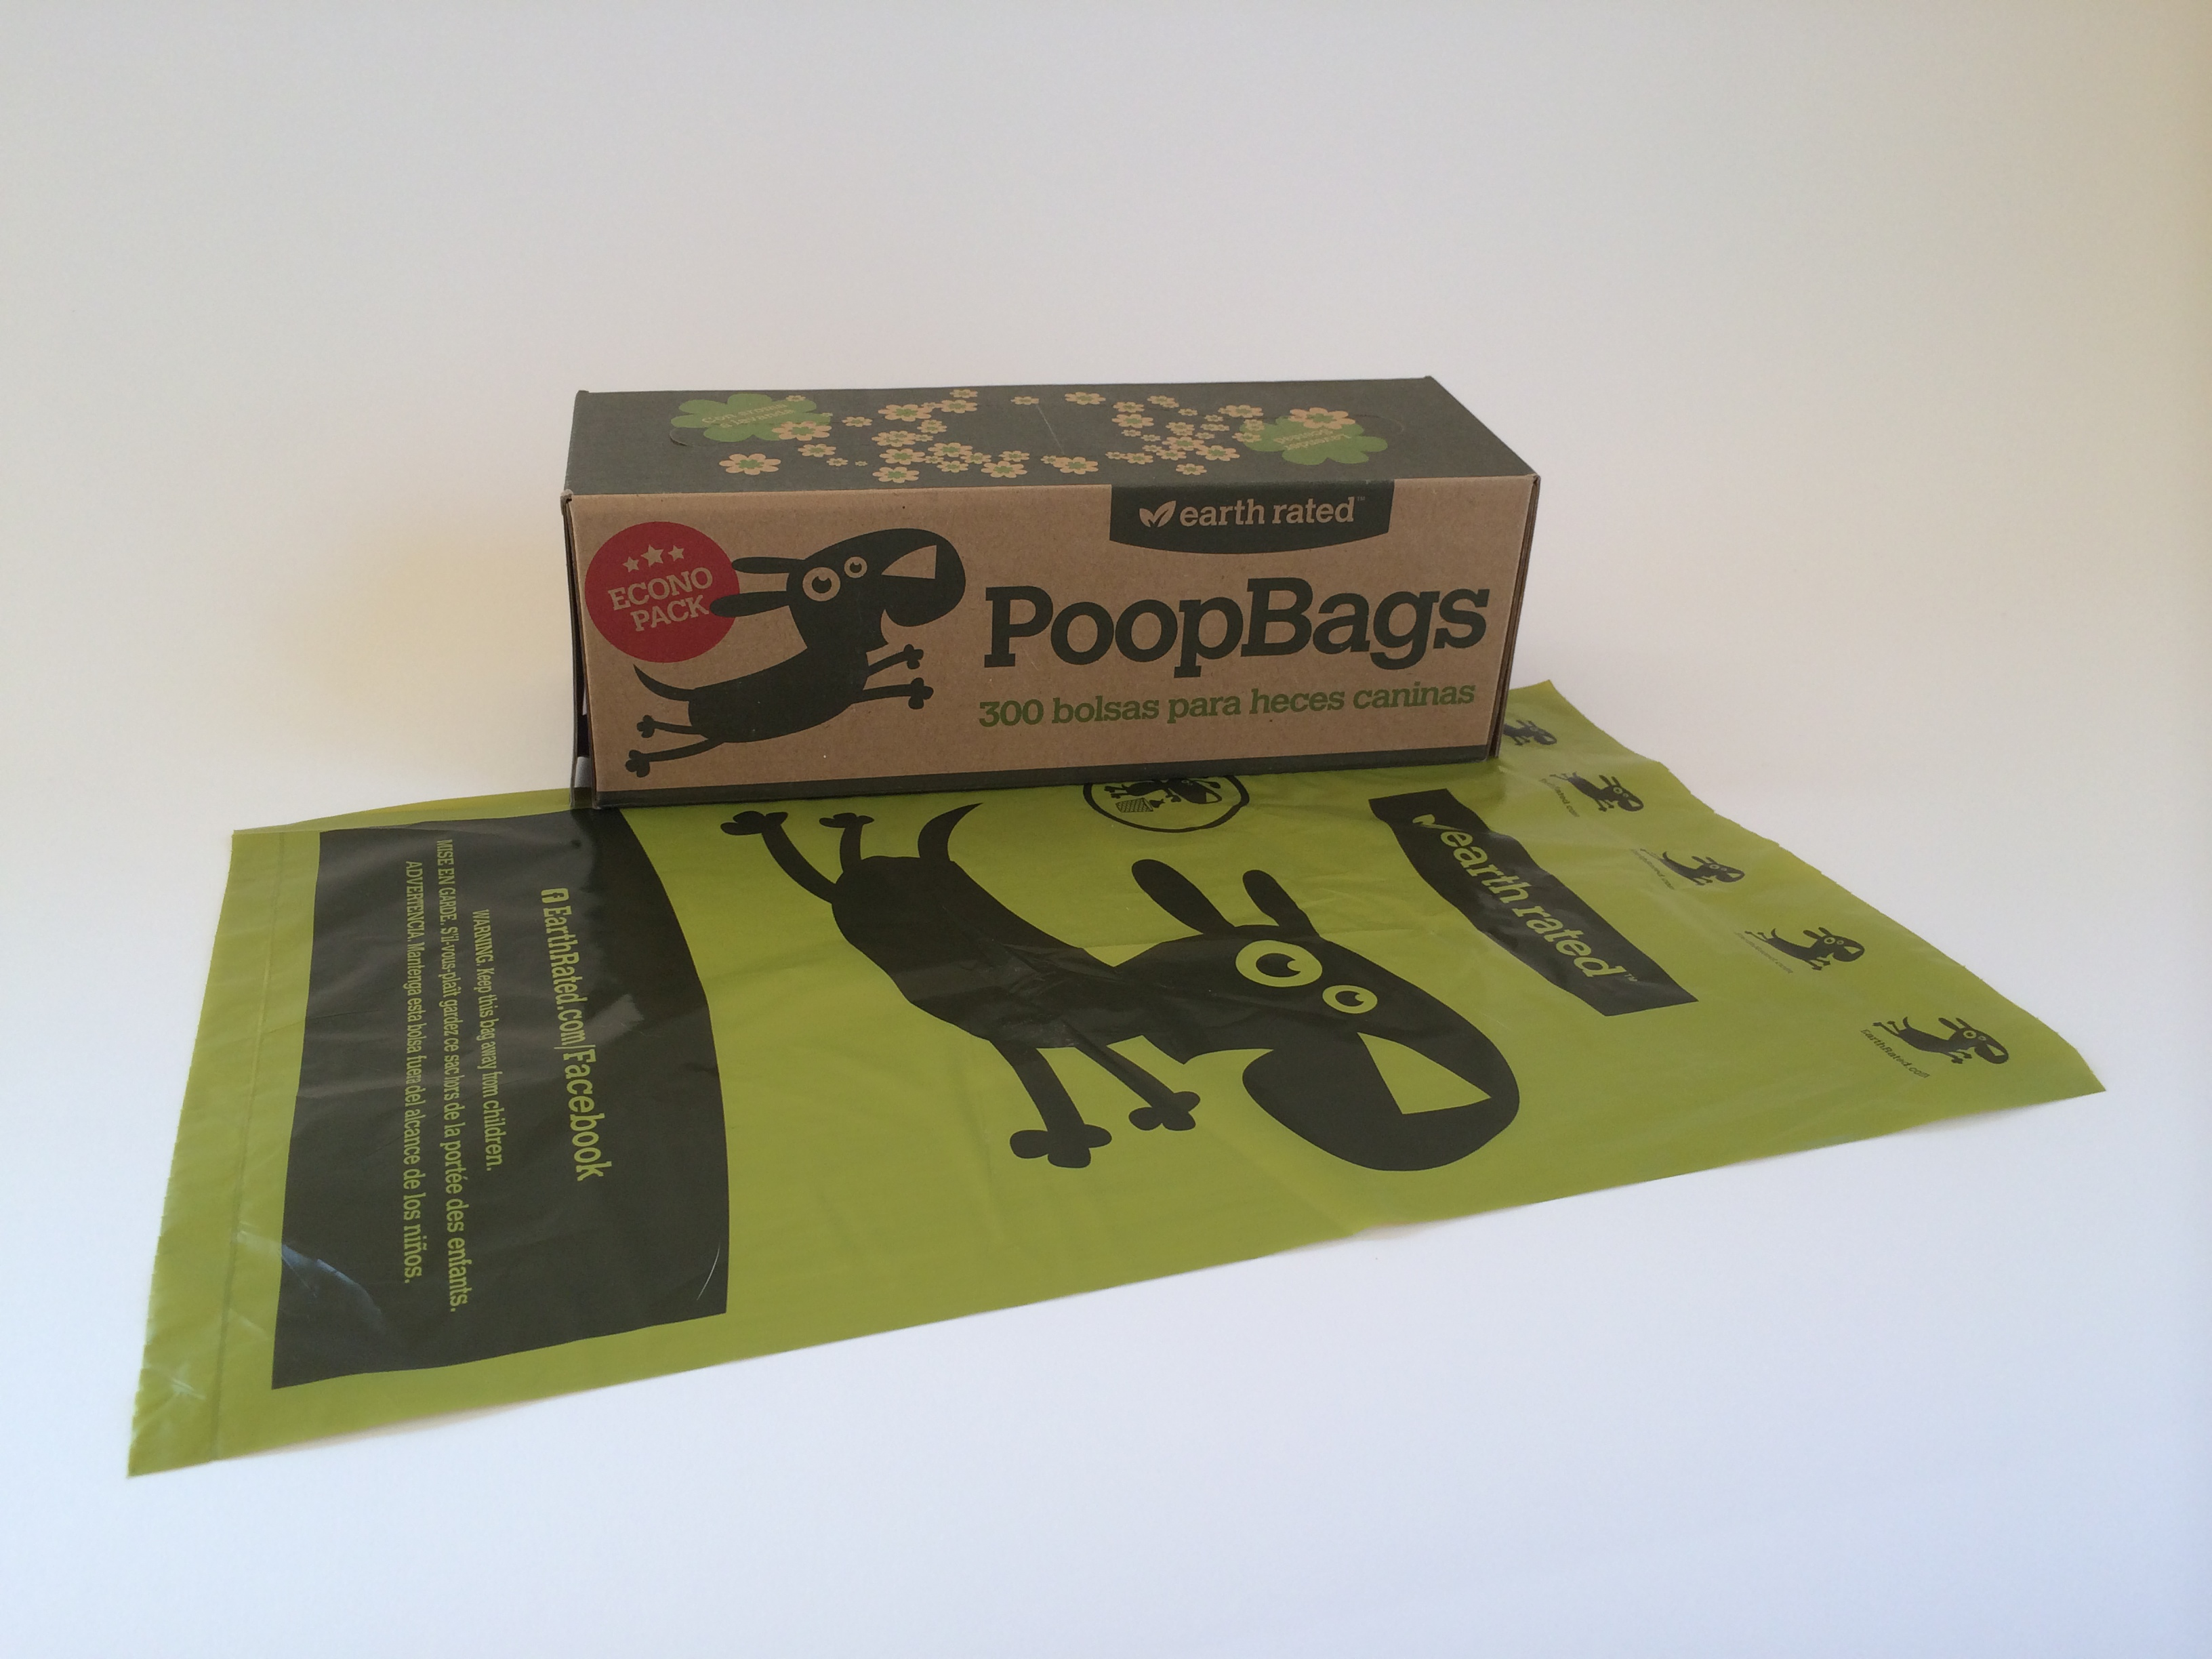 GreenPoopBags